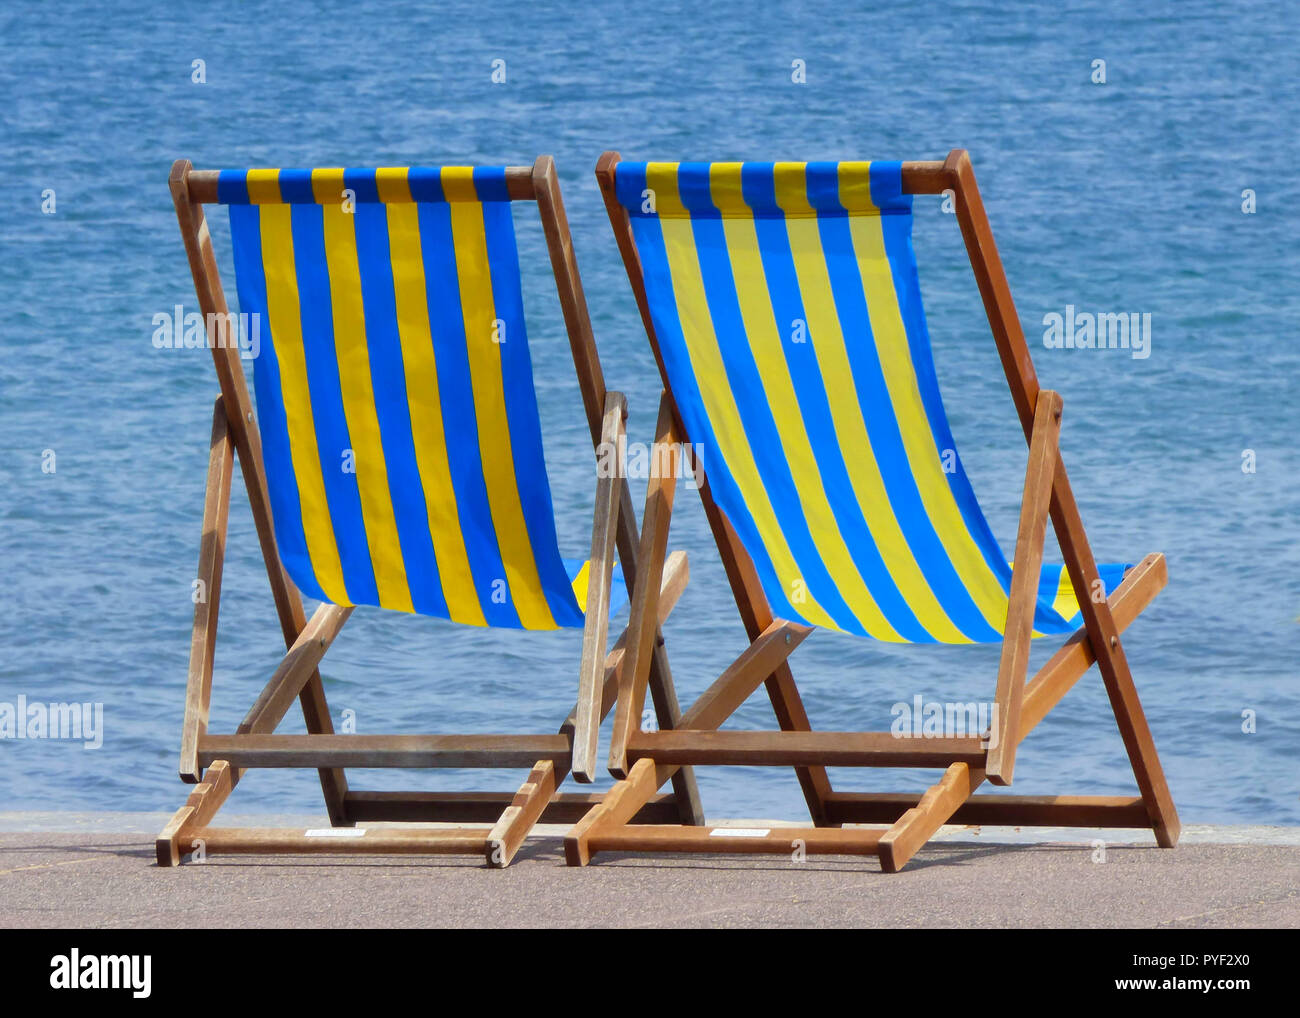 chair cover rentals victoria bc fairfield yellow deck chairs stock photos and